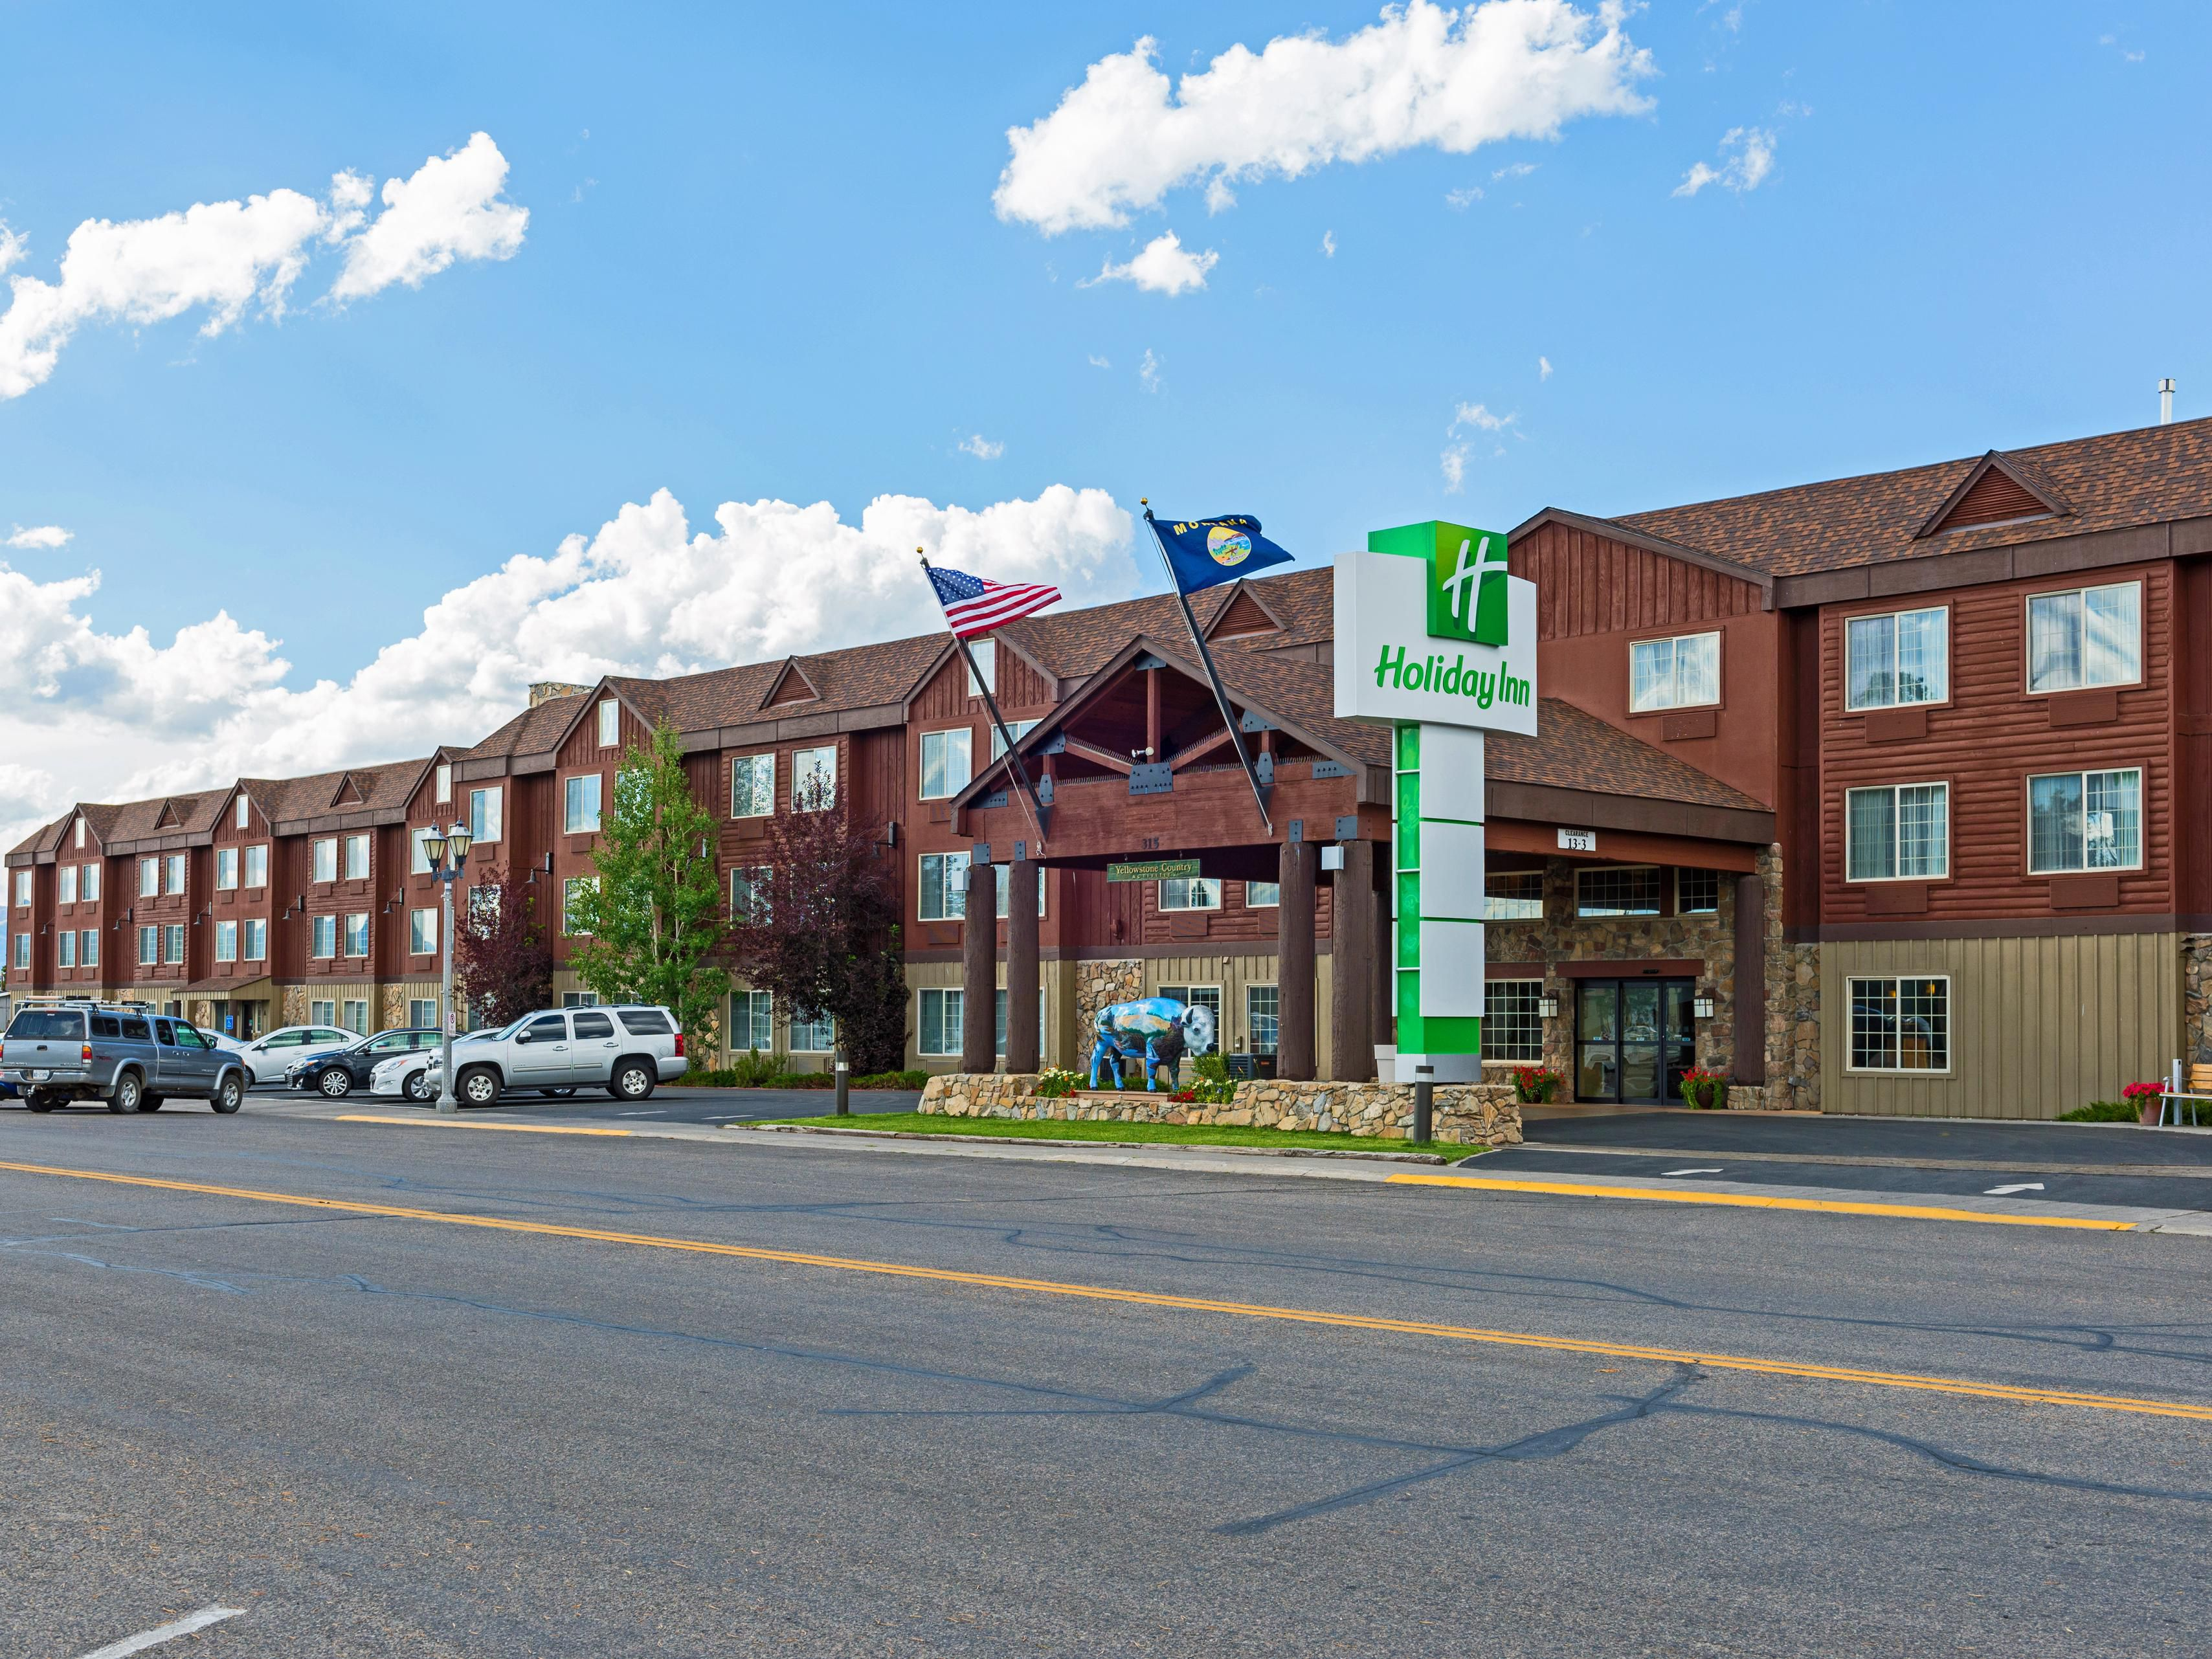 The Holiday Inn in West Yellowstone, Montana